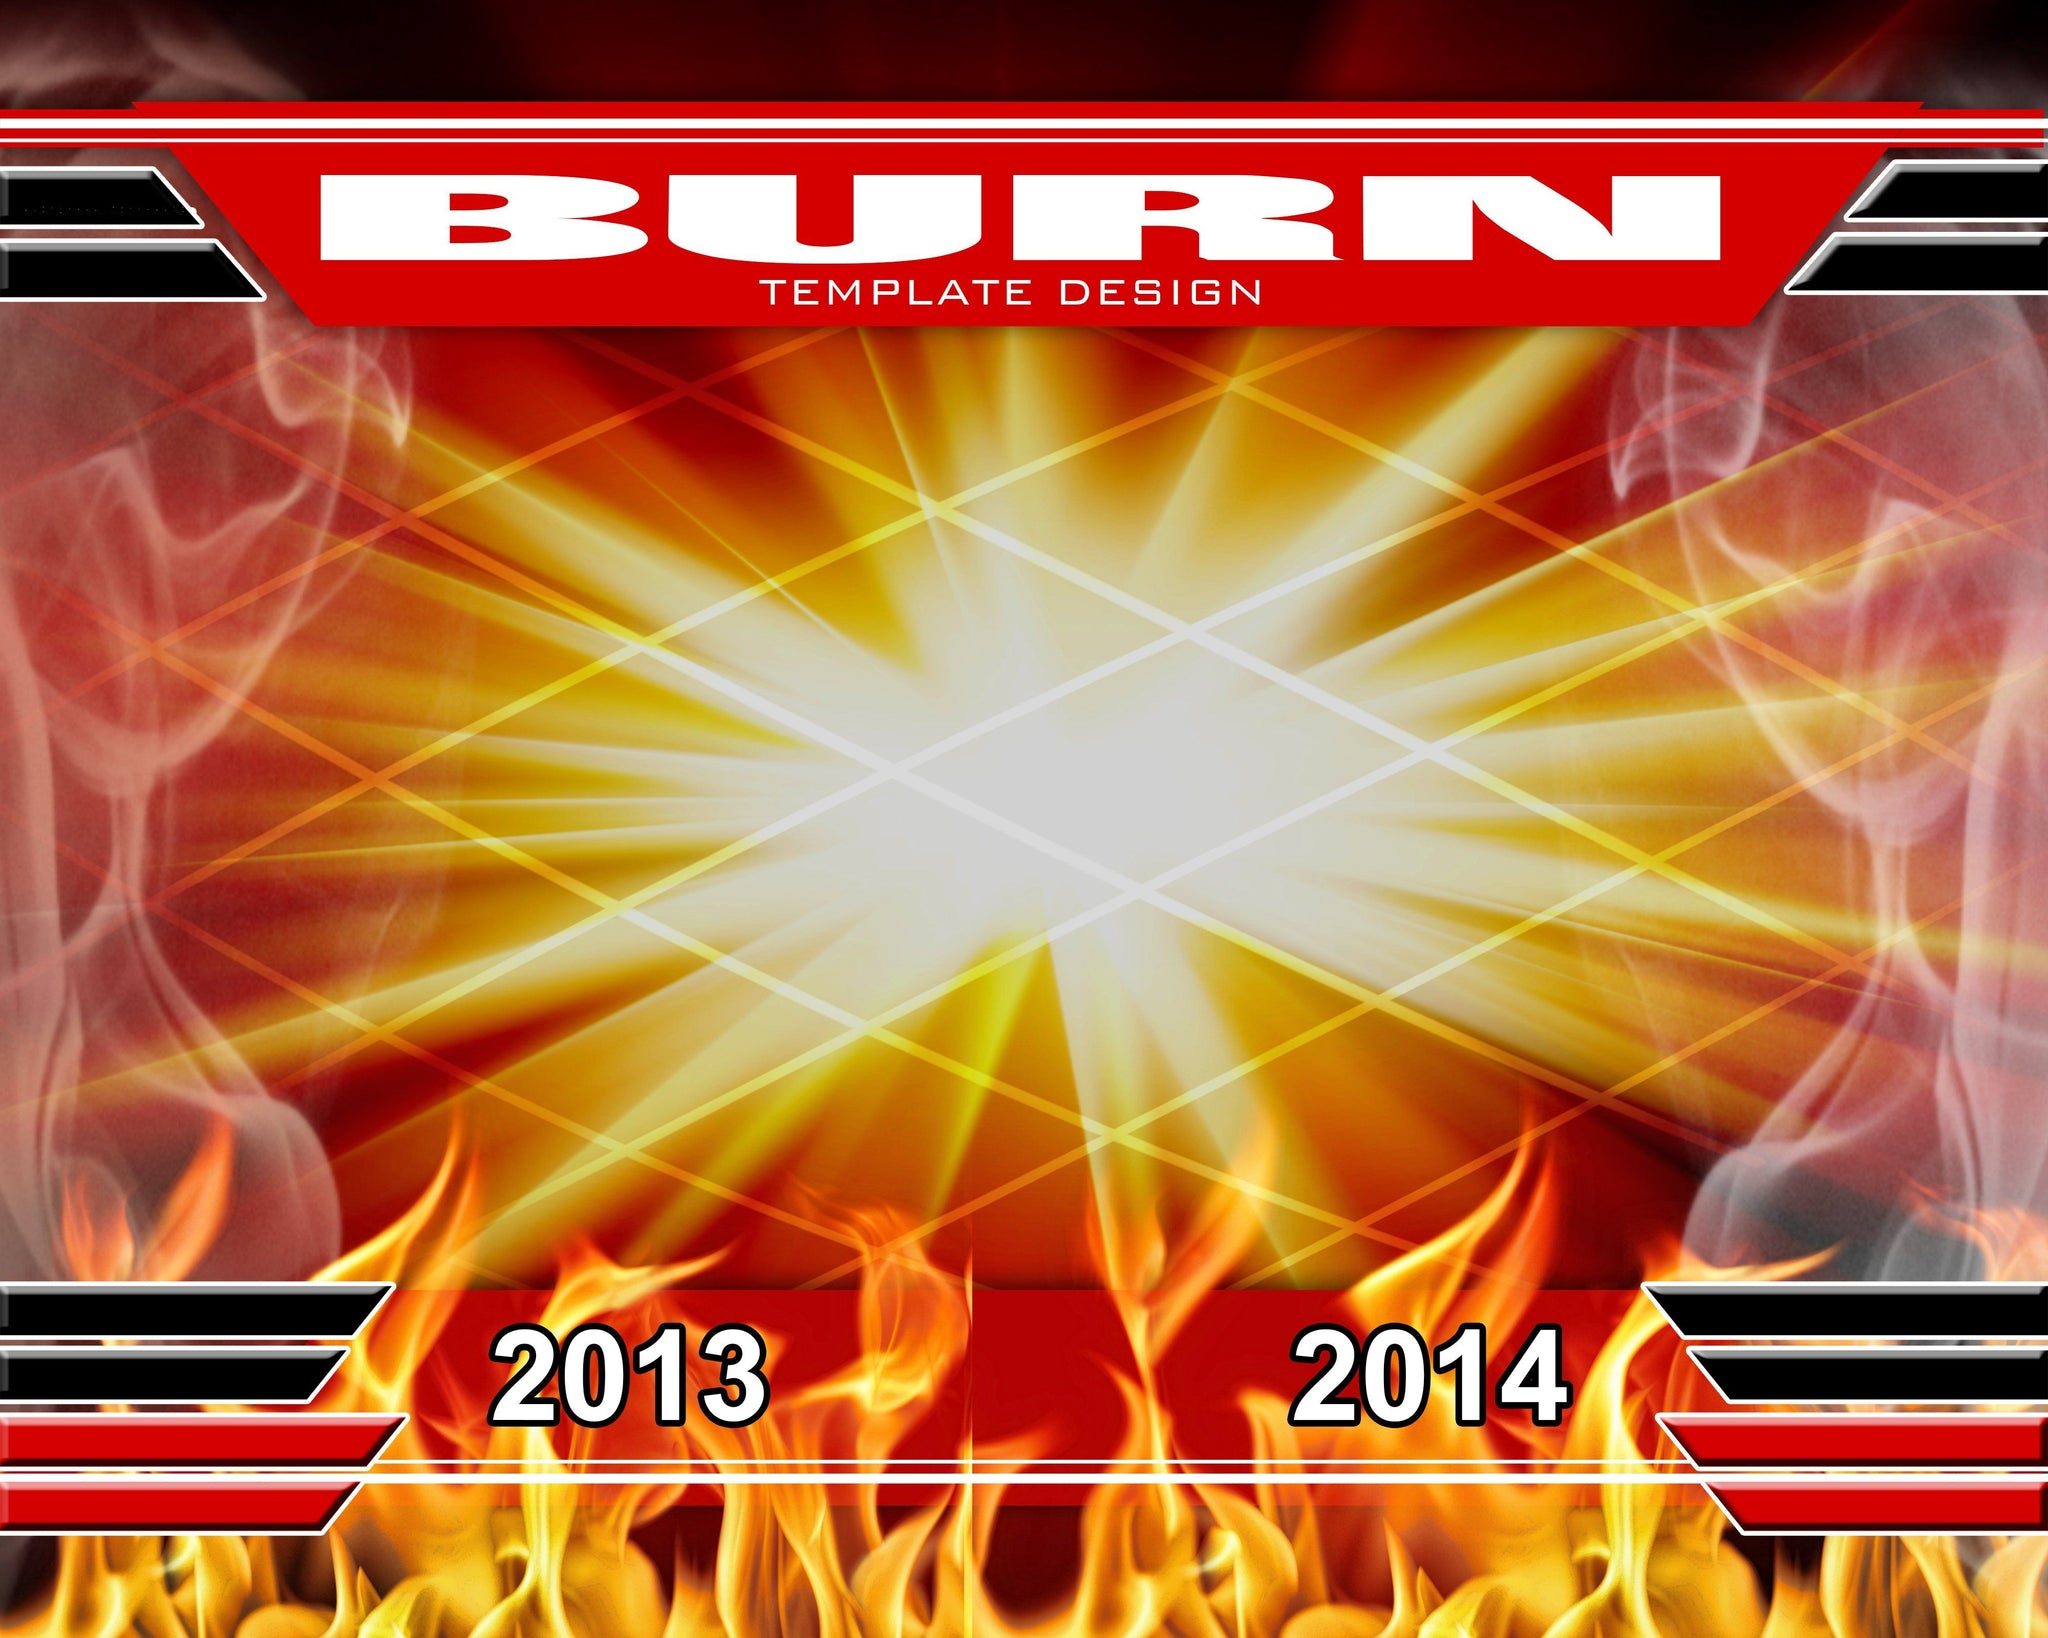 Burn v.1 - Xtreme Team Downloadable Template Photo Solutions PSMGraphix